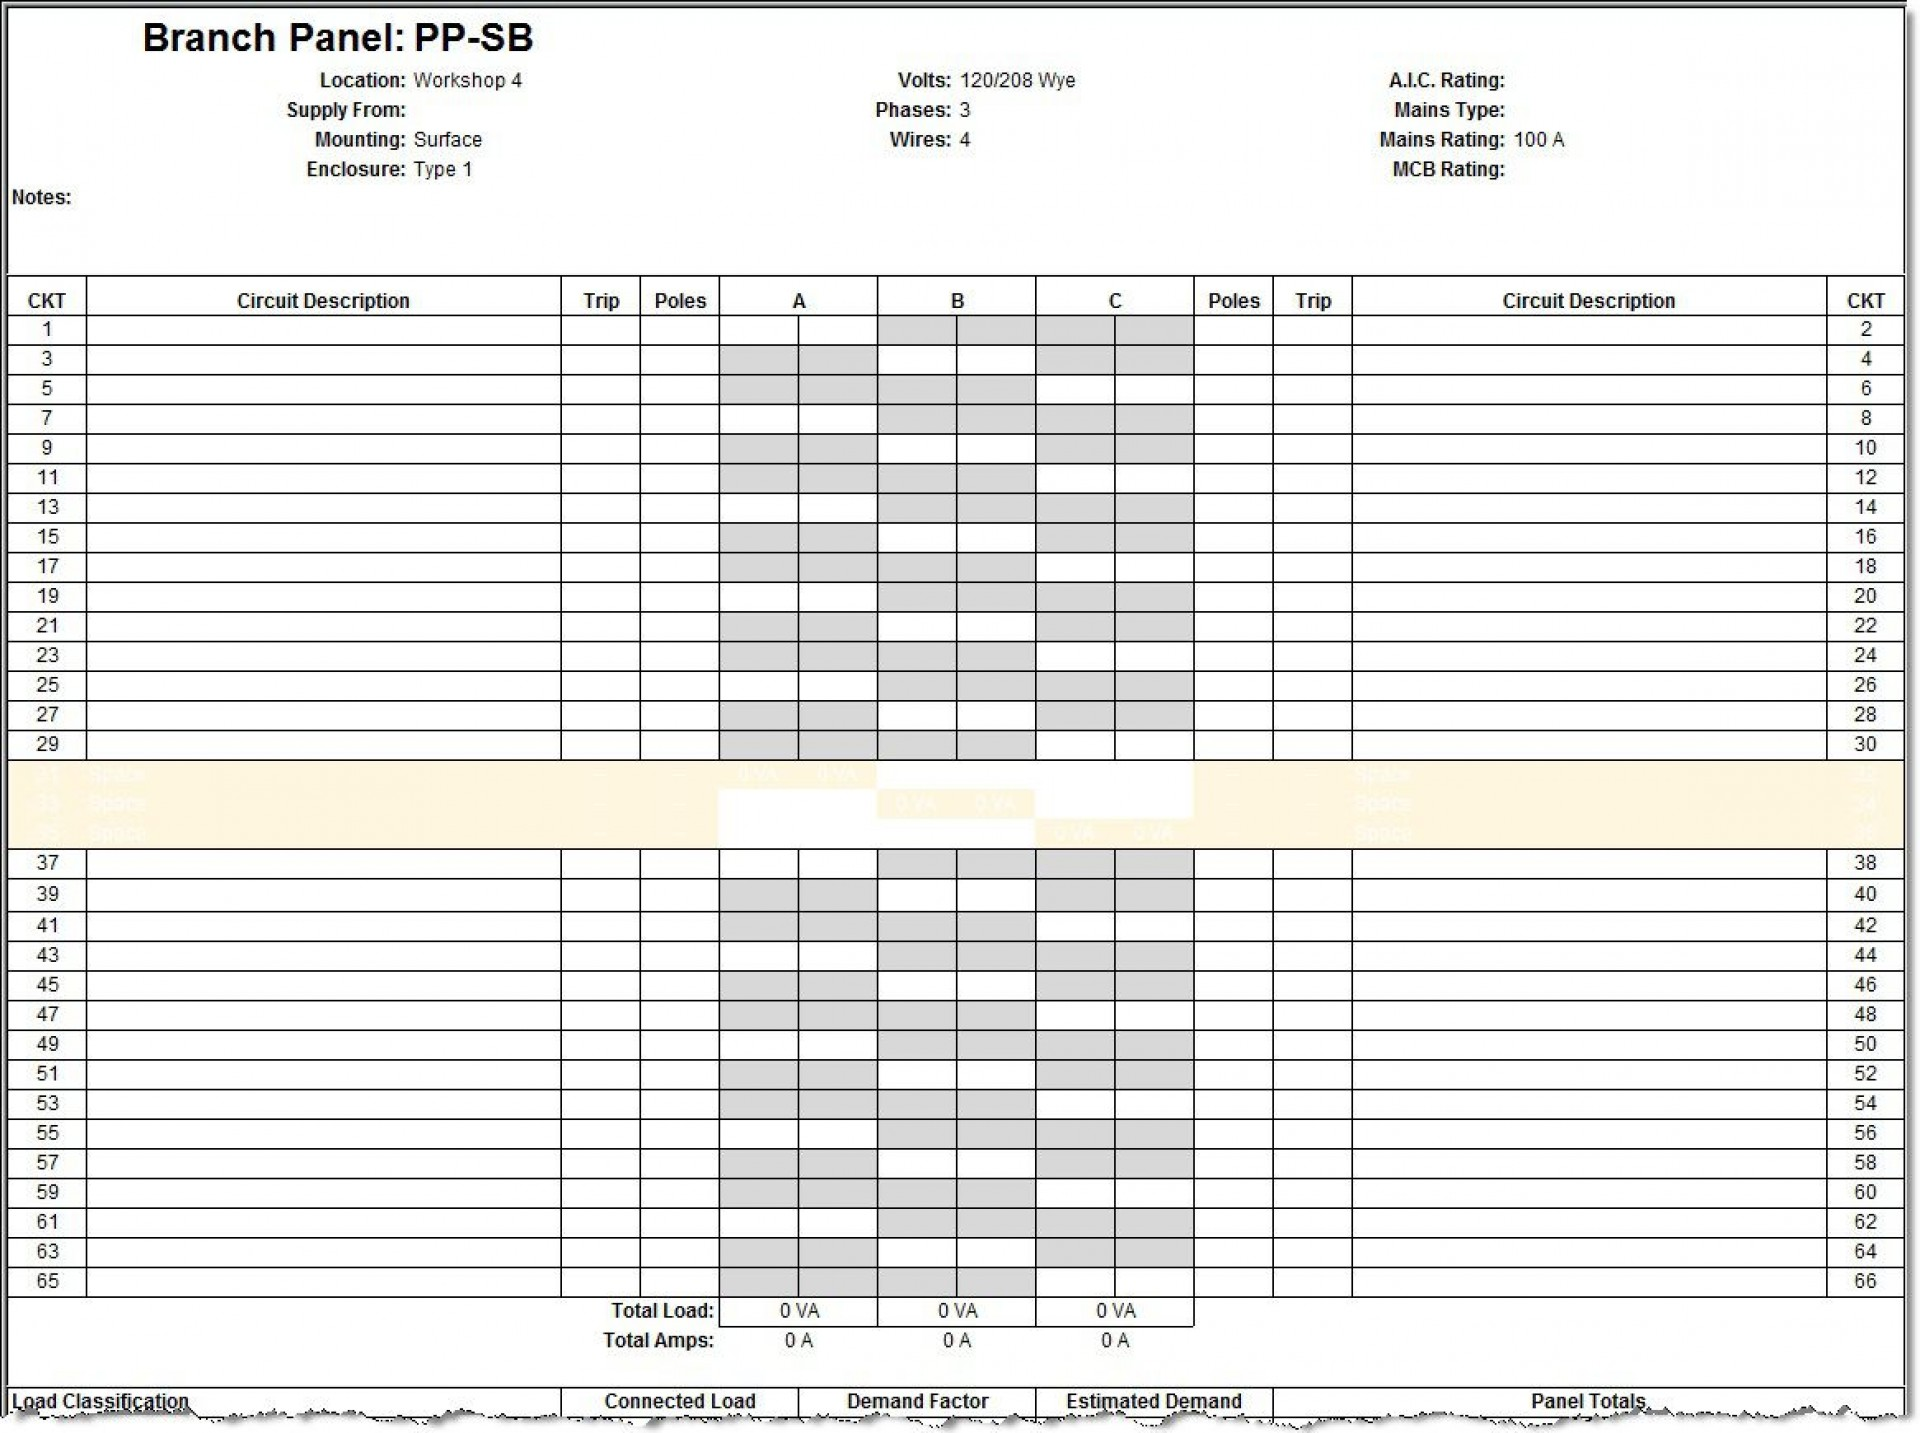 009 Amazing Electric Panel Schedule Template Sample  Electrical Excel Free Blank Word1920